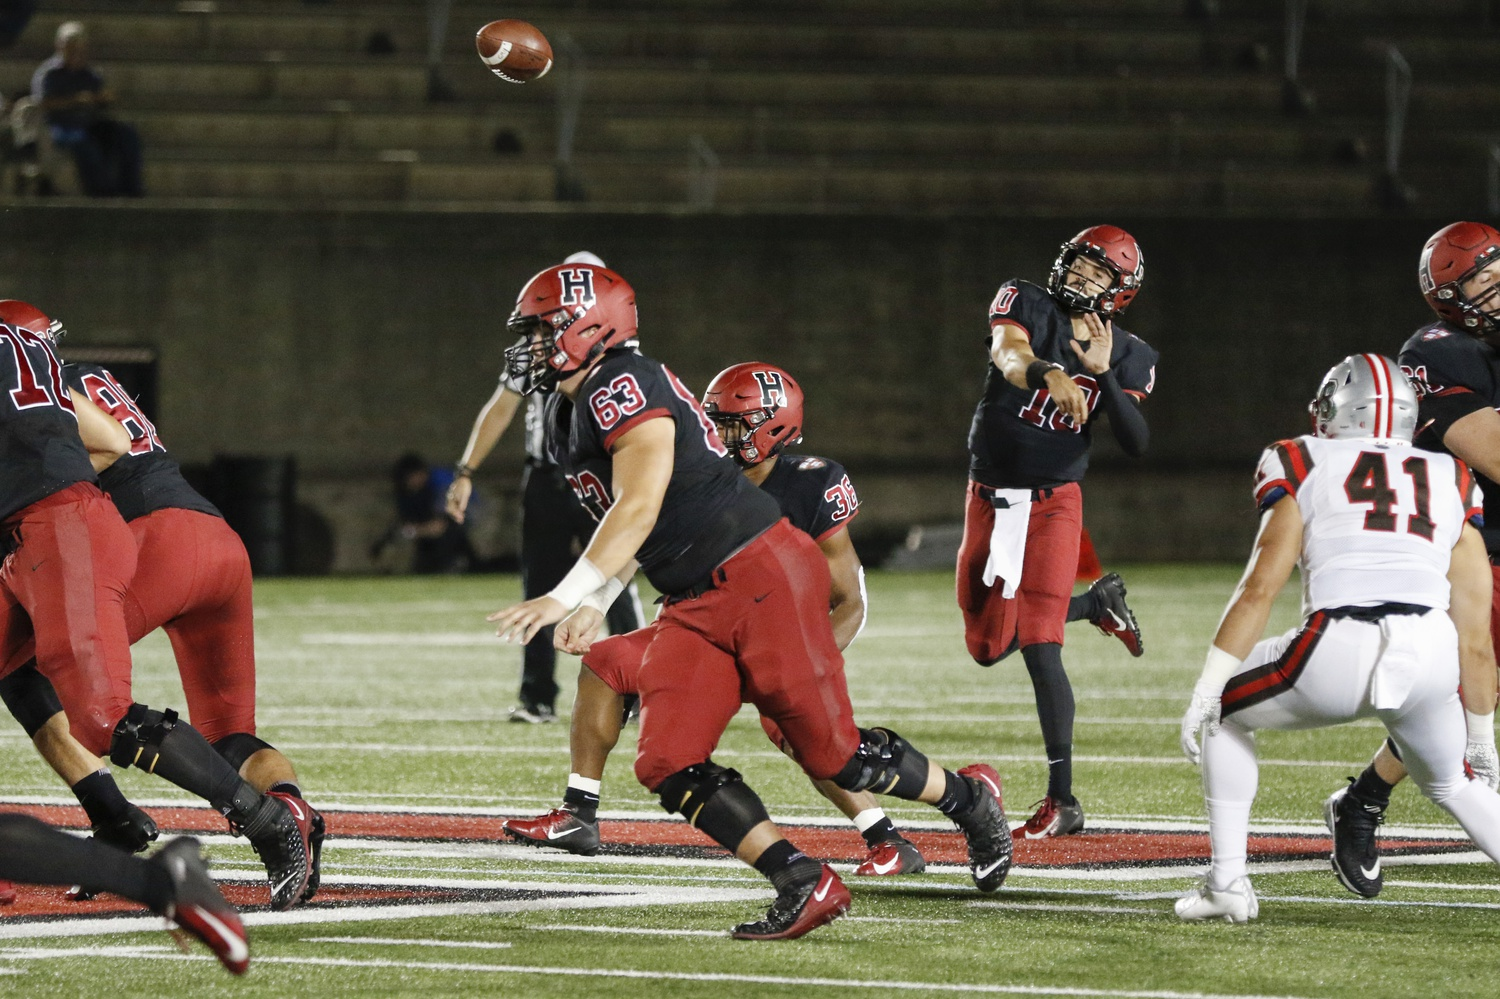 Senior quarterback Jake Smith drives the ball downfield in Harvard's last home opener, also against Brown, a 42-7 victory.